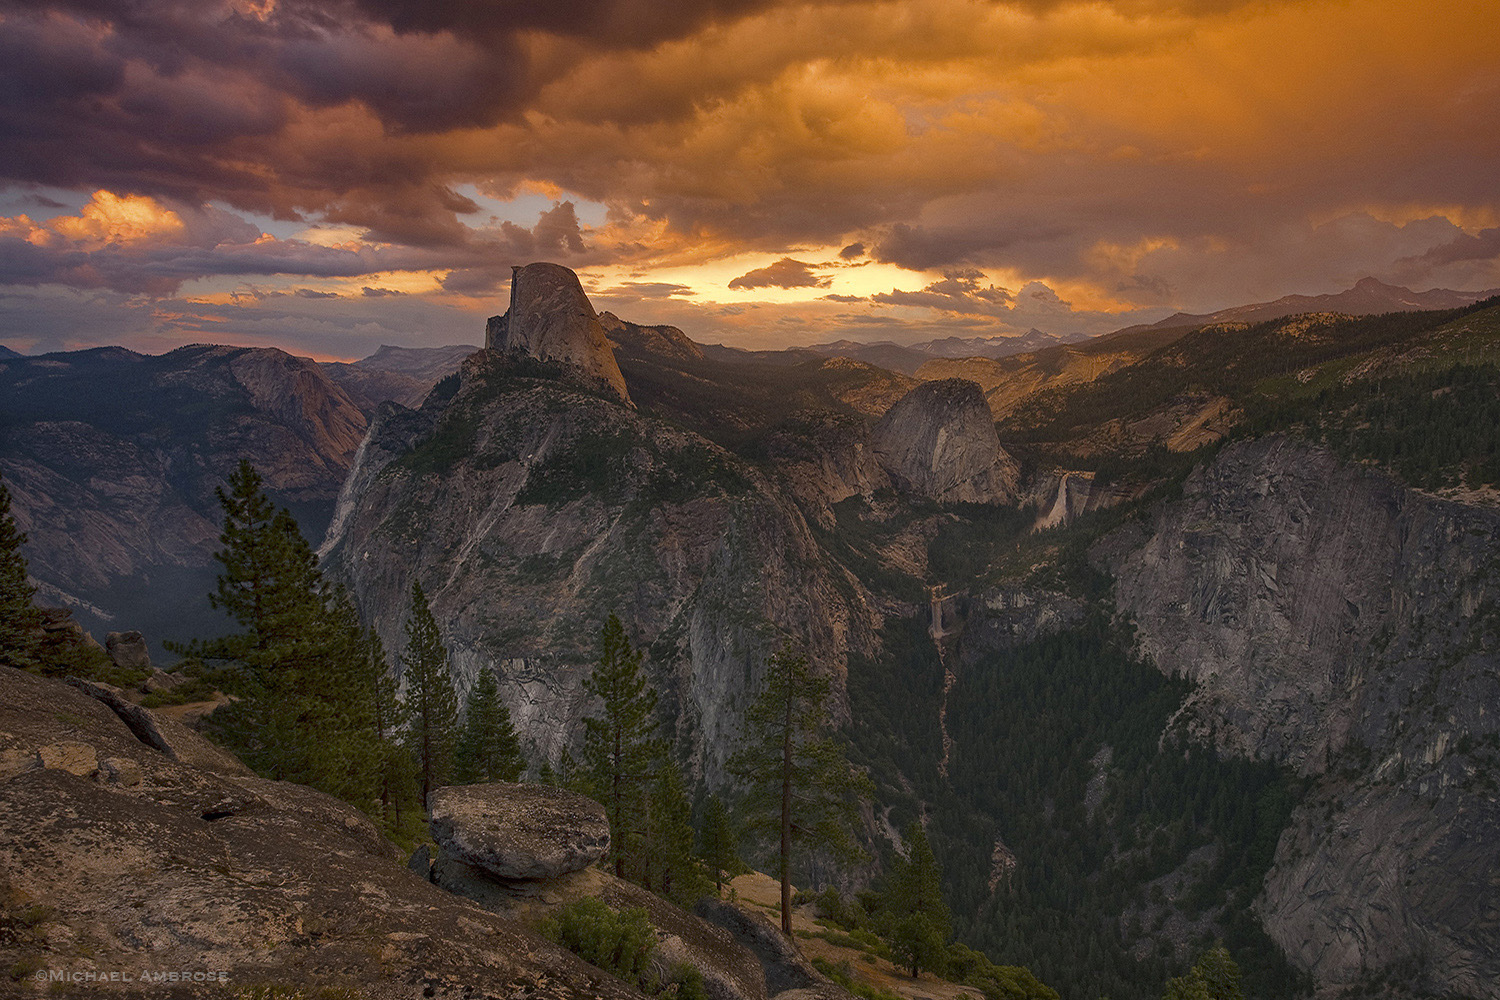 This was one of the strangest days I have experienced in Yosemite. The storm that was moving through the region was out of the...